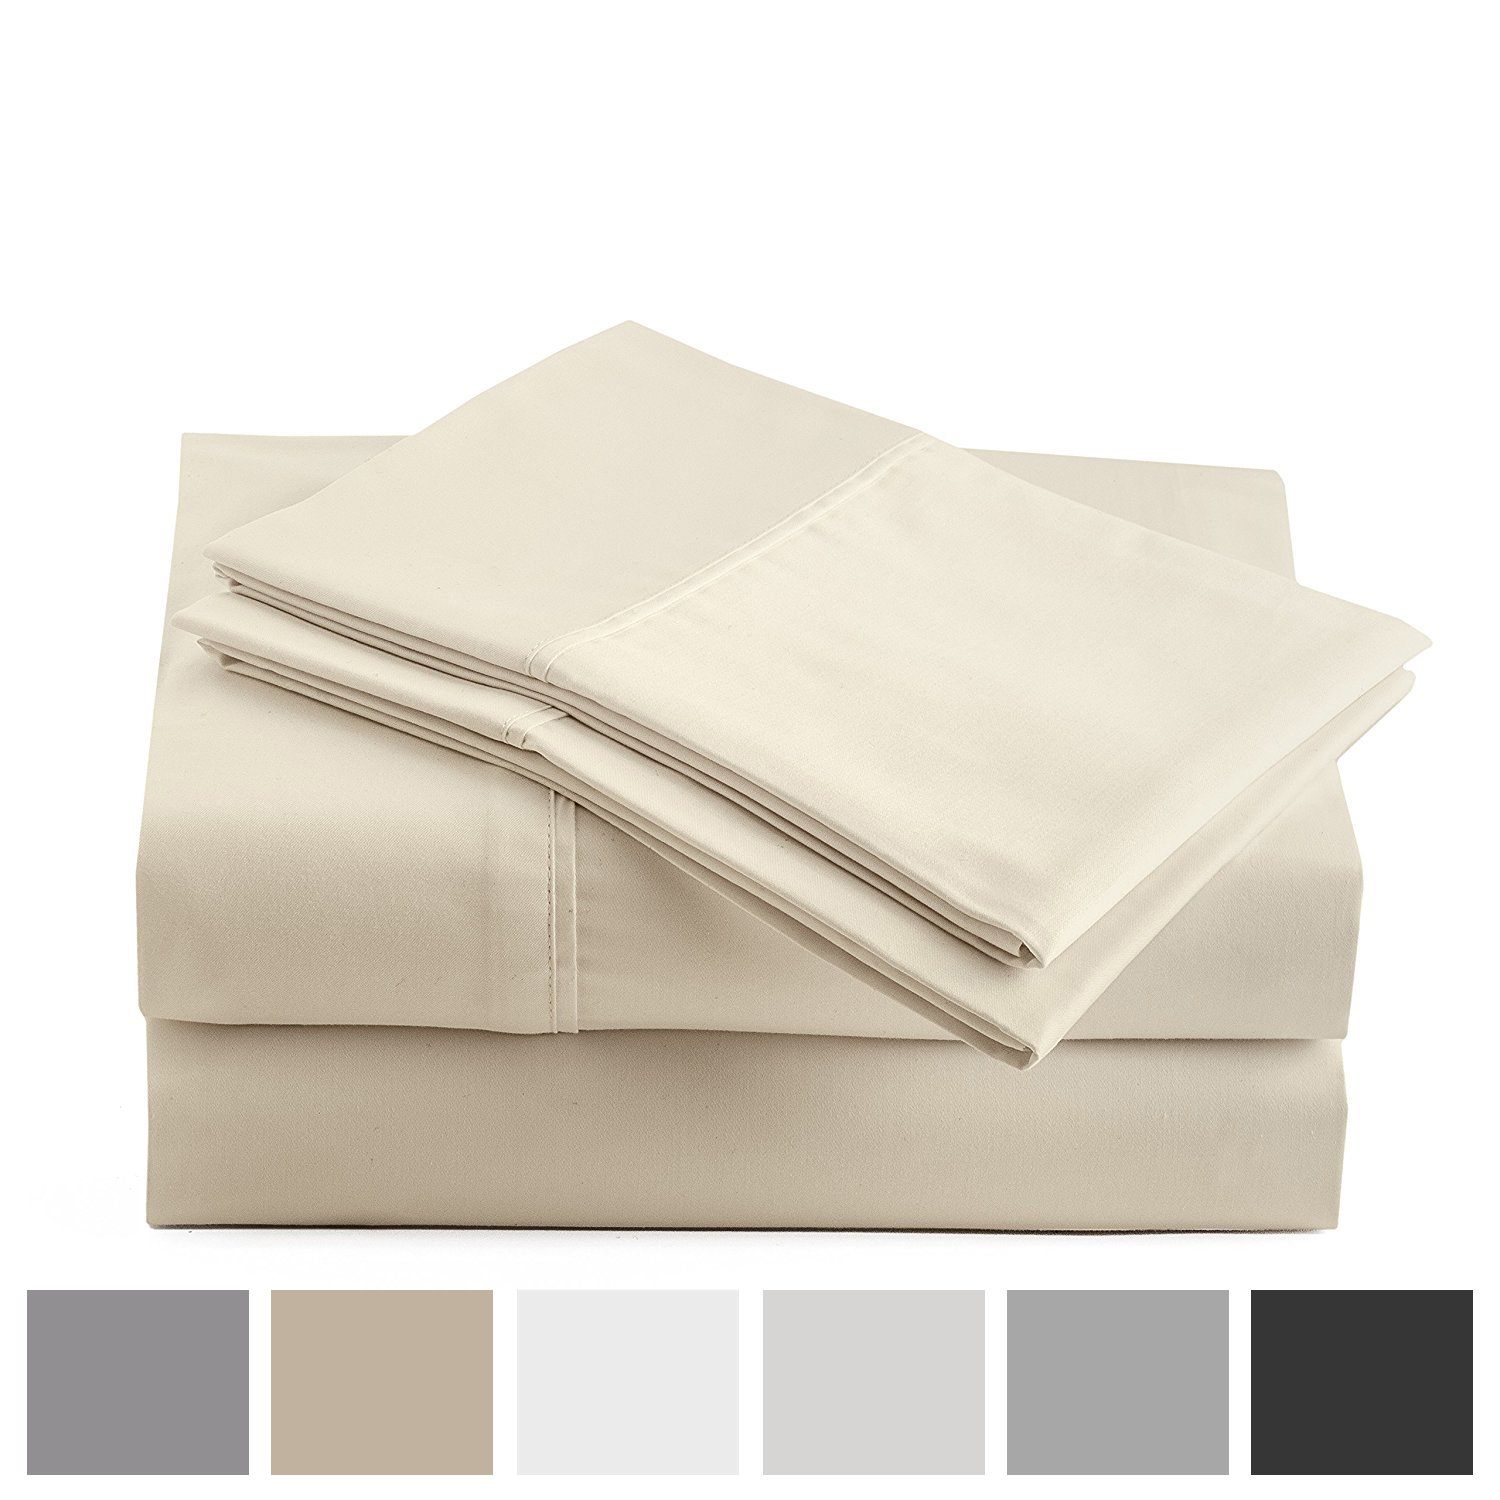 Peru Pima 415 Thread Count - 100% Peruvian Pima Cotton - Percale - Bed Sheet Set (King, Ivory)